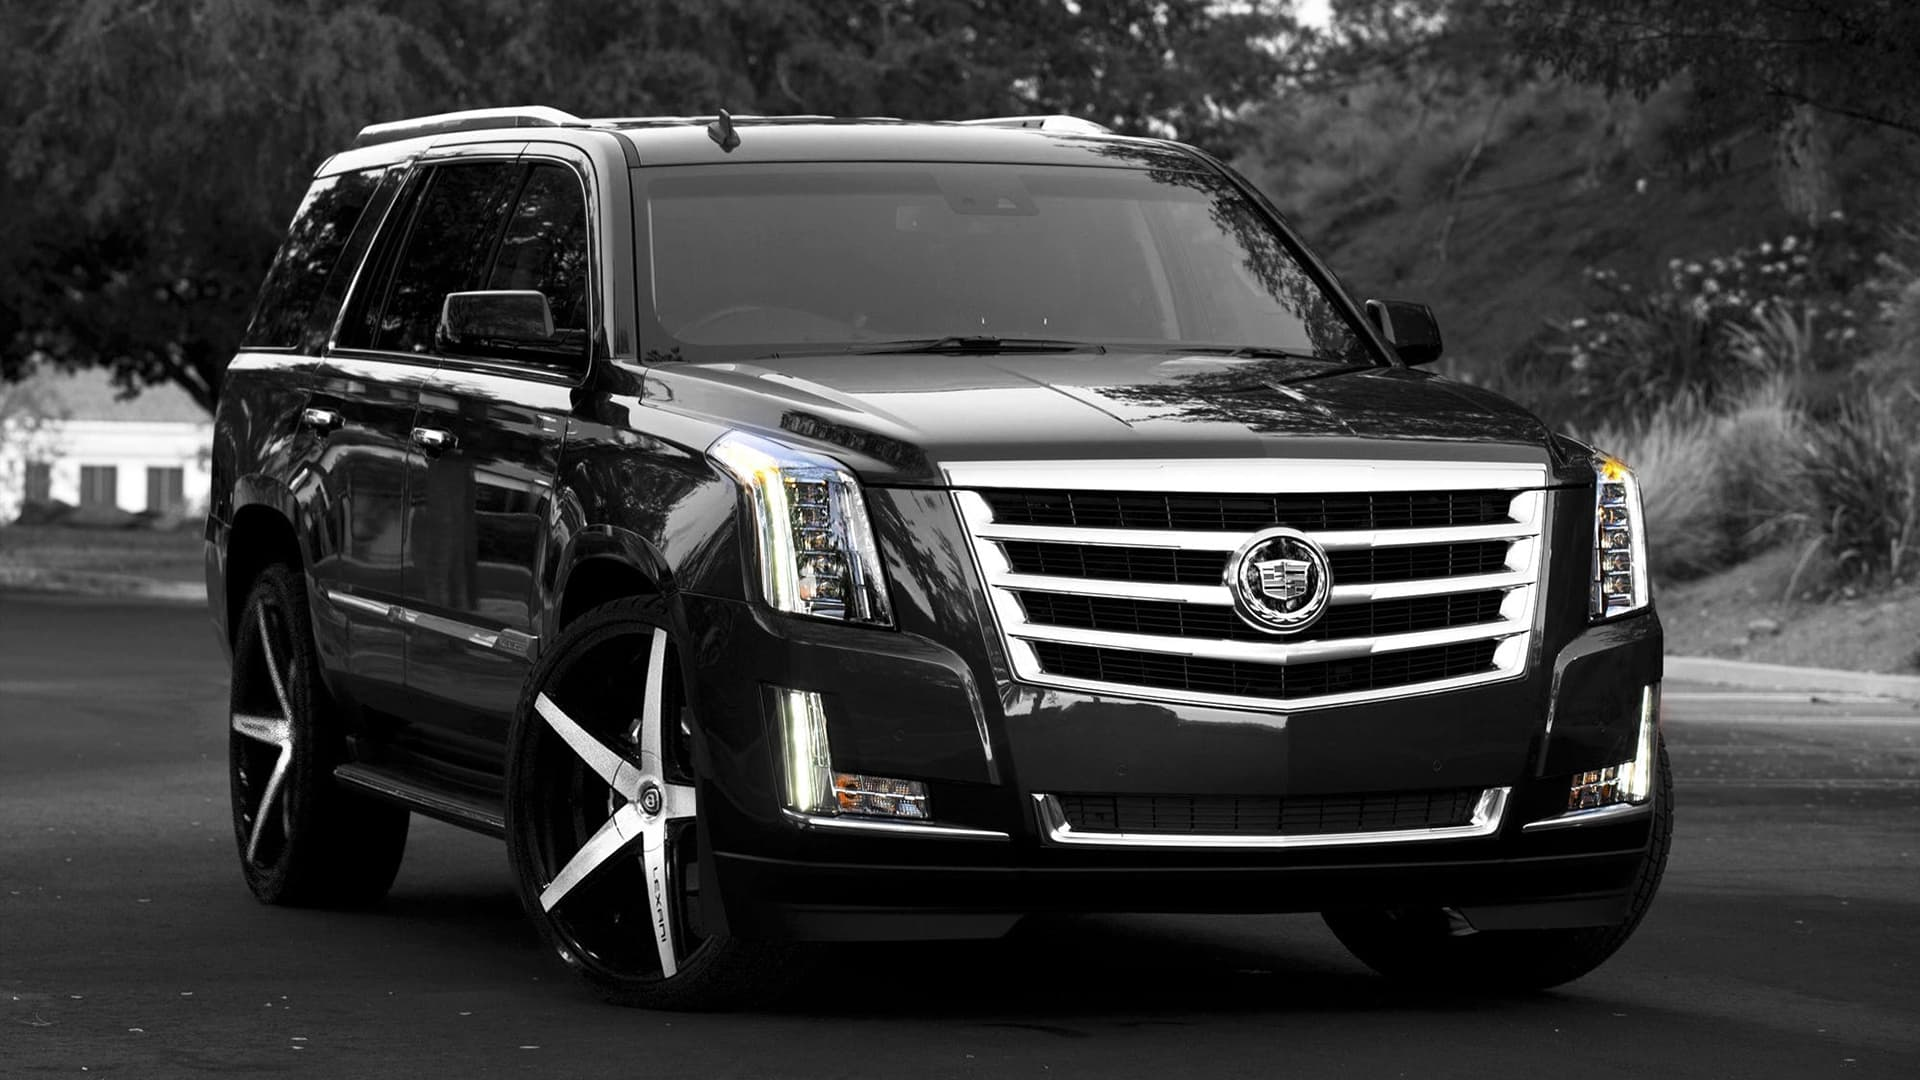 20 cadillac escalade wallpapers hd. Black Bedroom Furniture Sets. Home Design Ideas